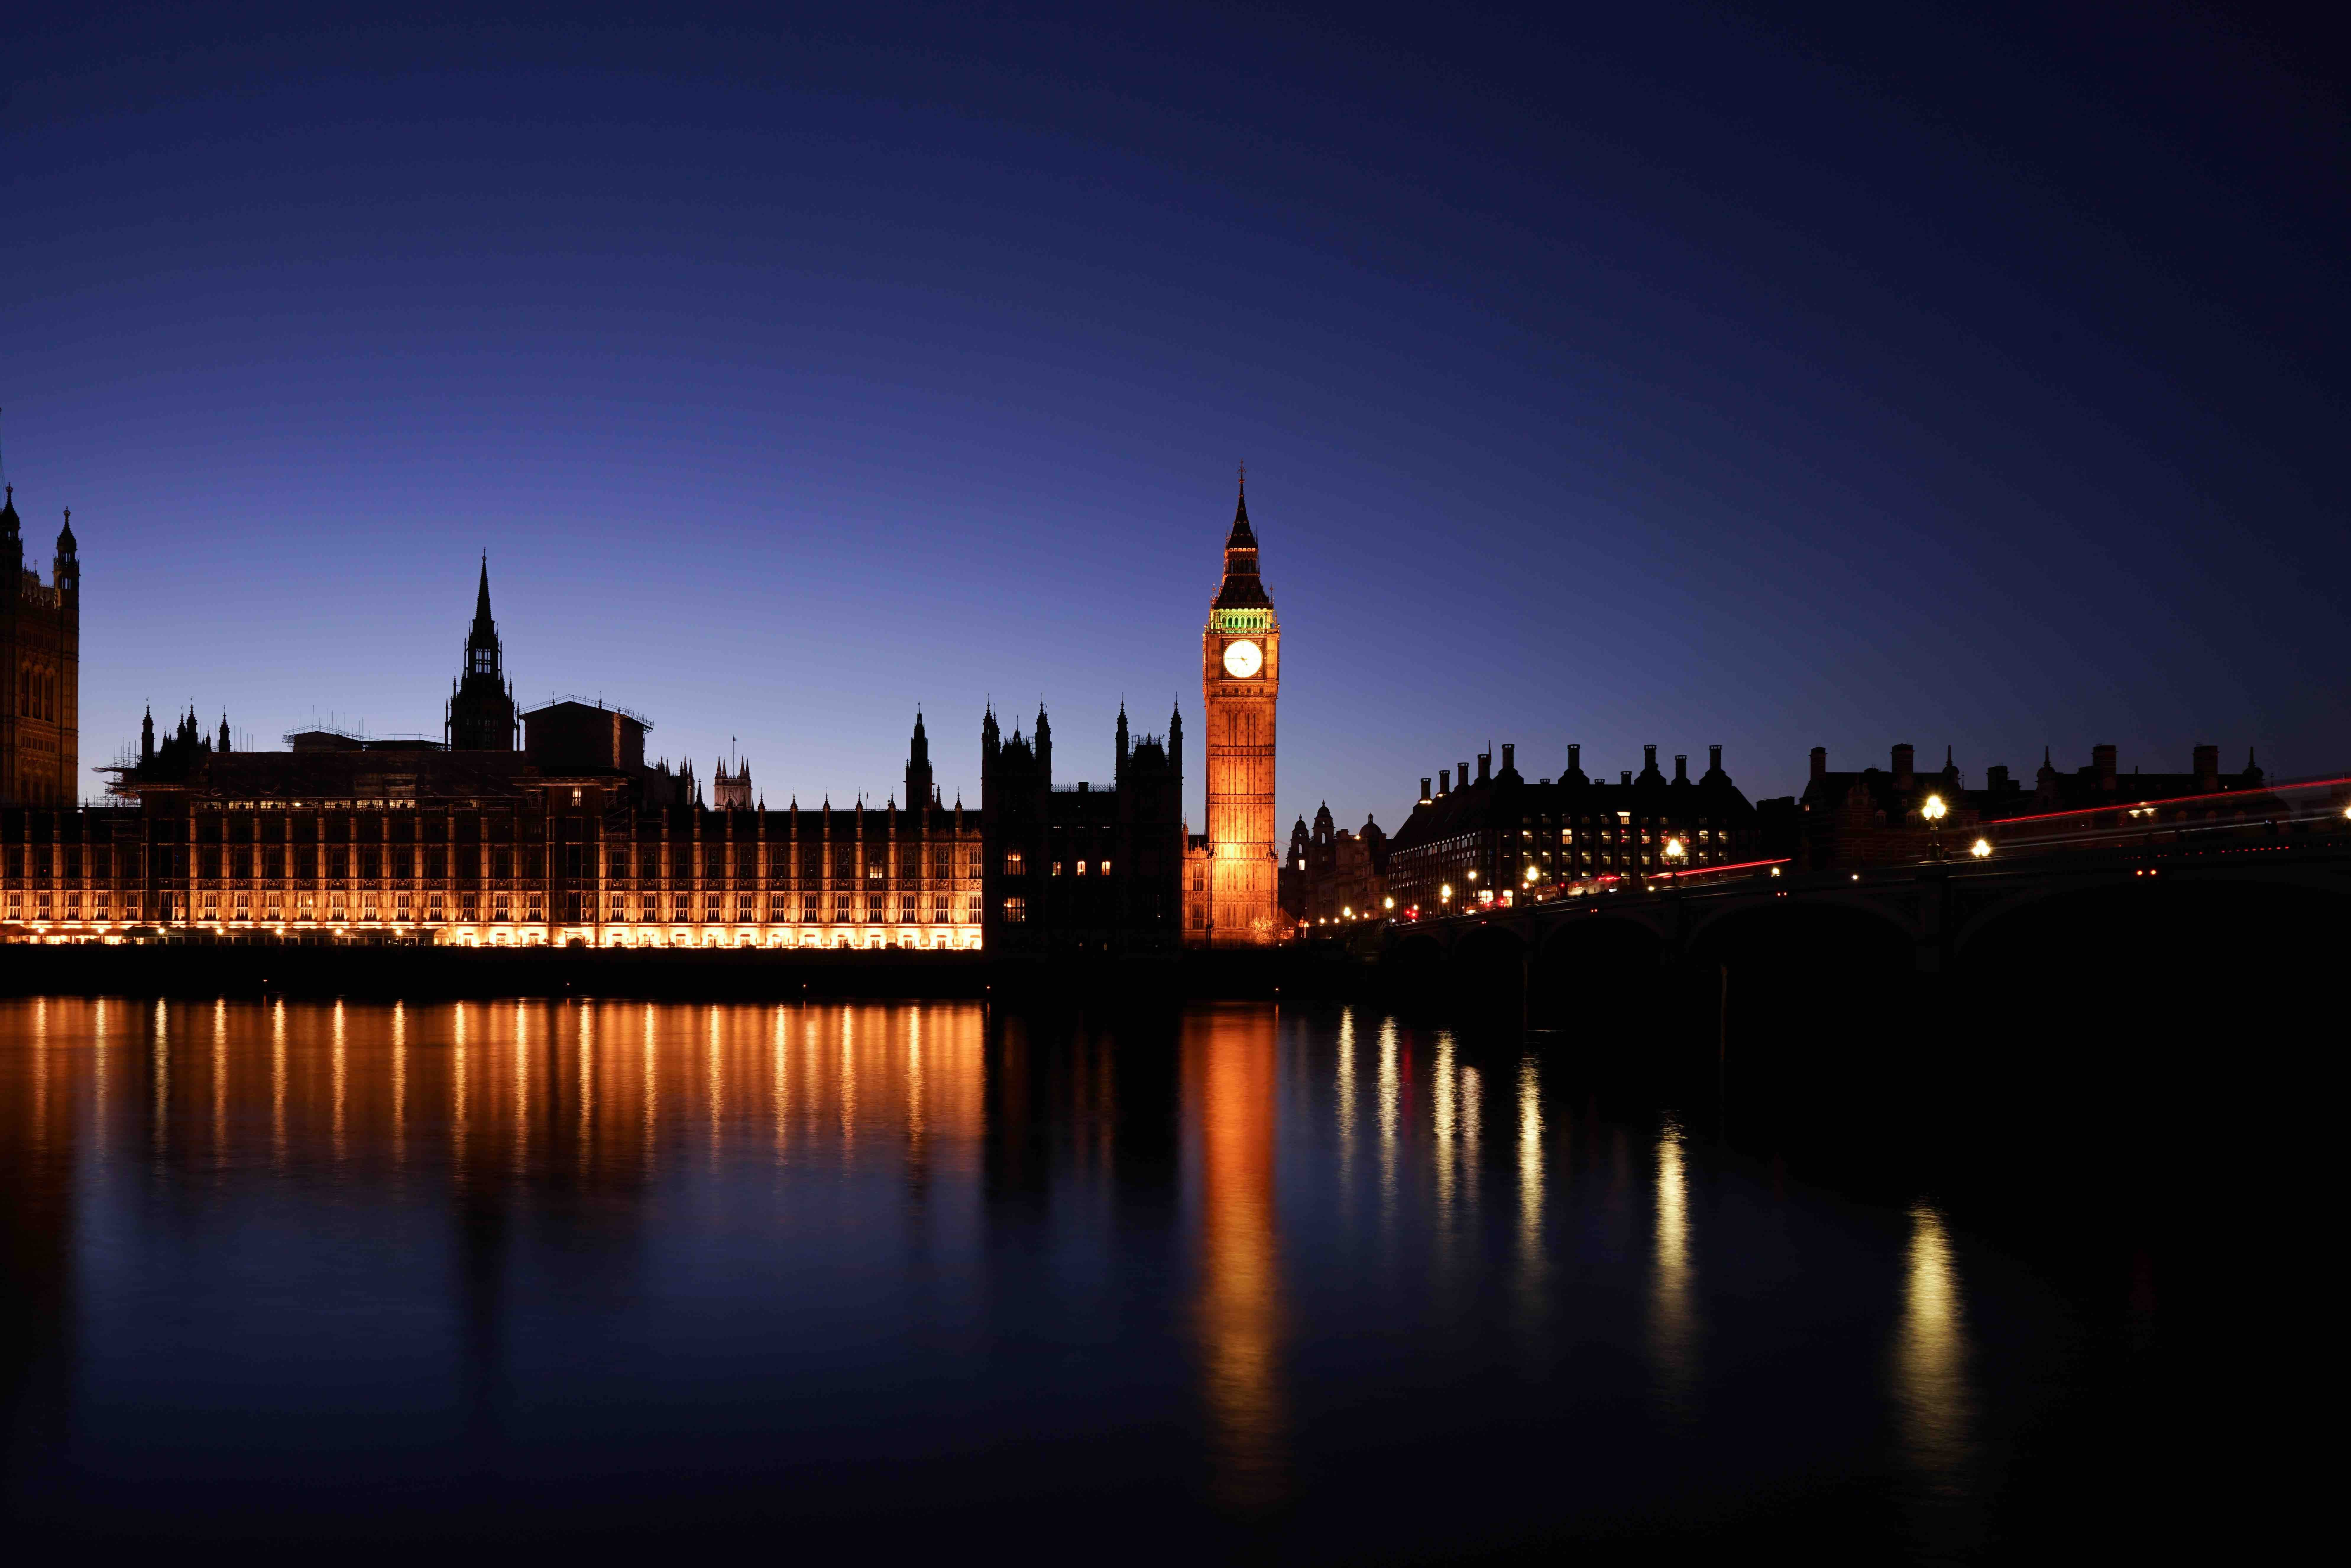 Study MBA/Business Masters in the UK